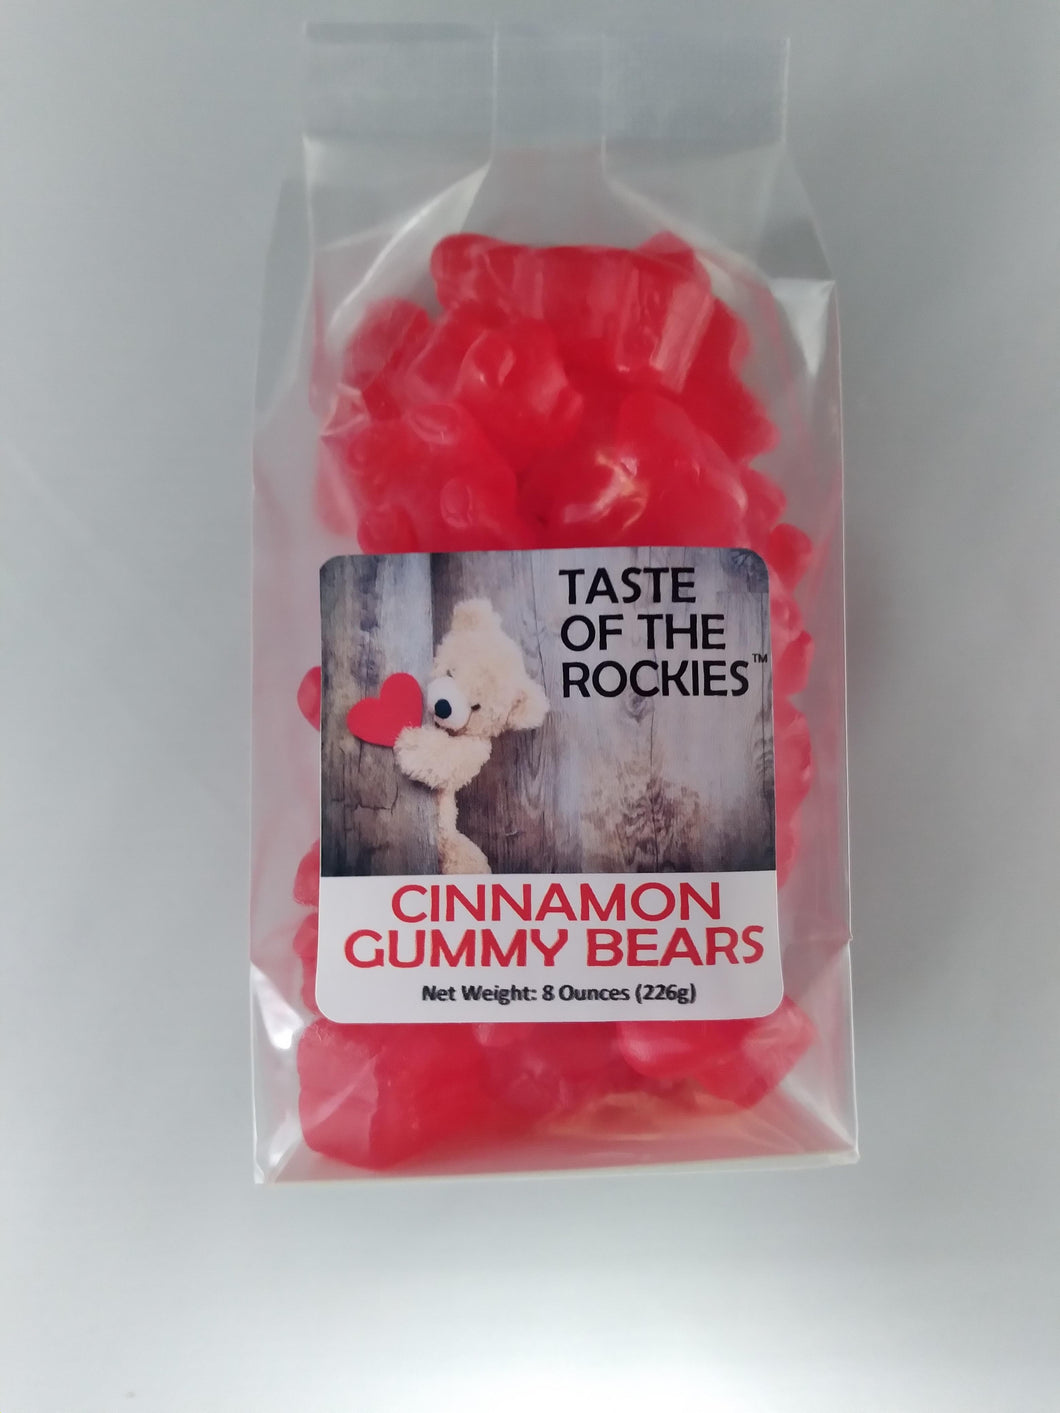 Cinnamon JuJu Gummy Bears - Taste Of The Rockies